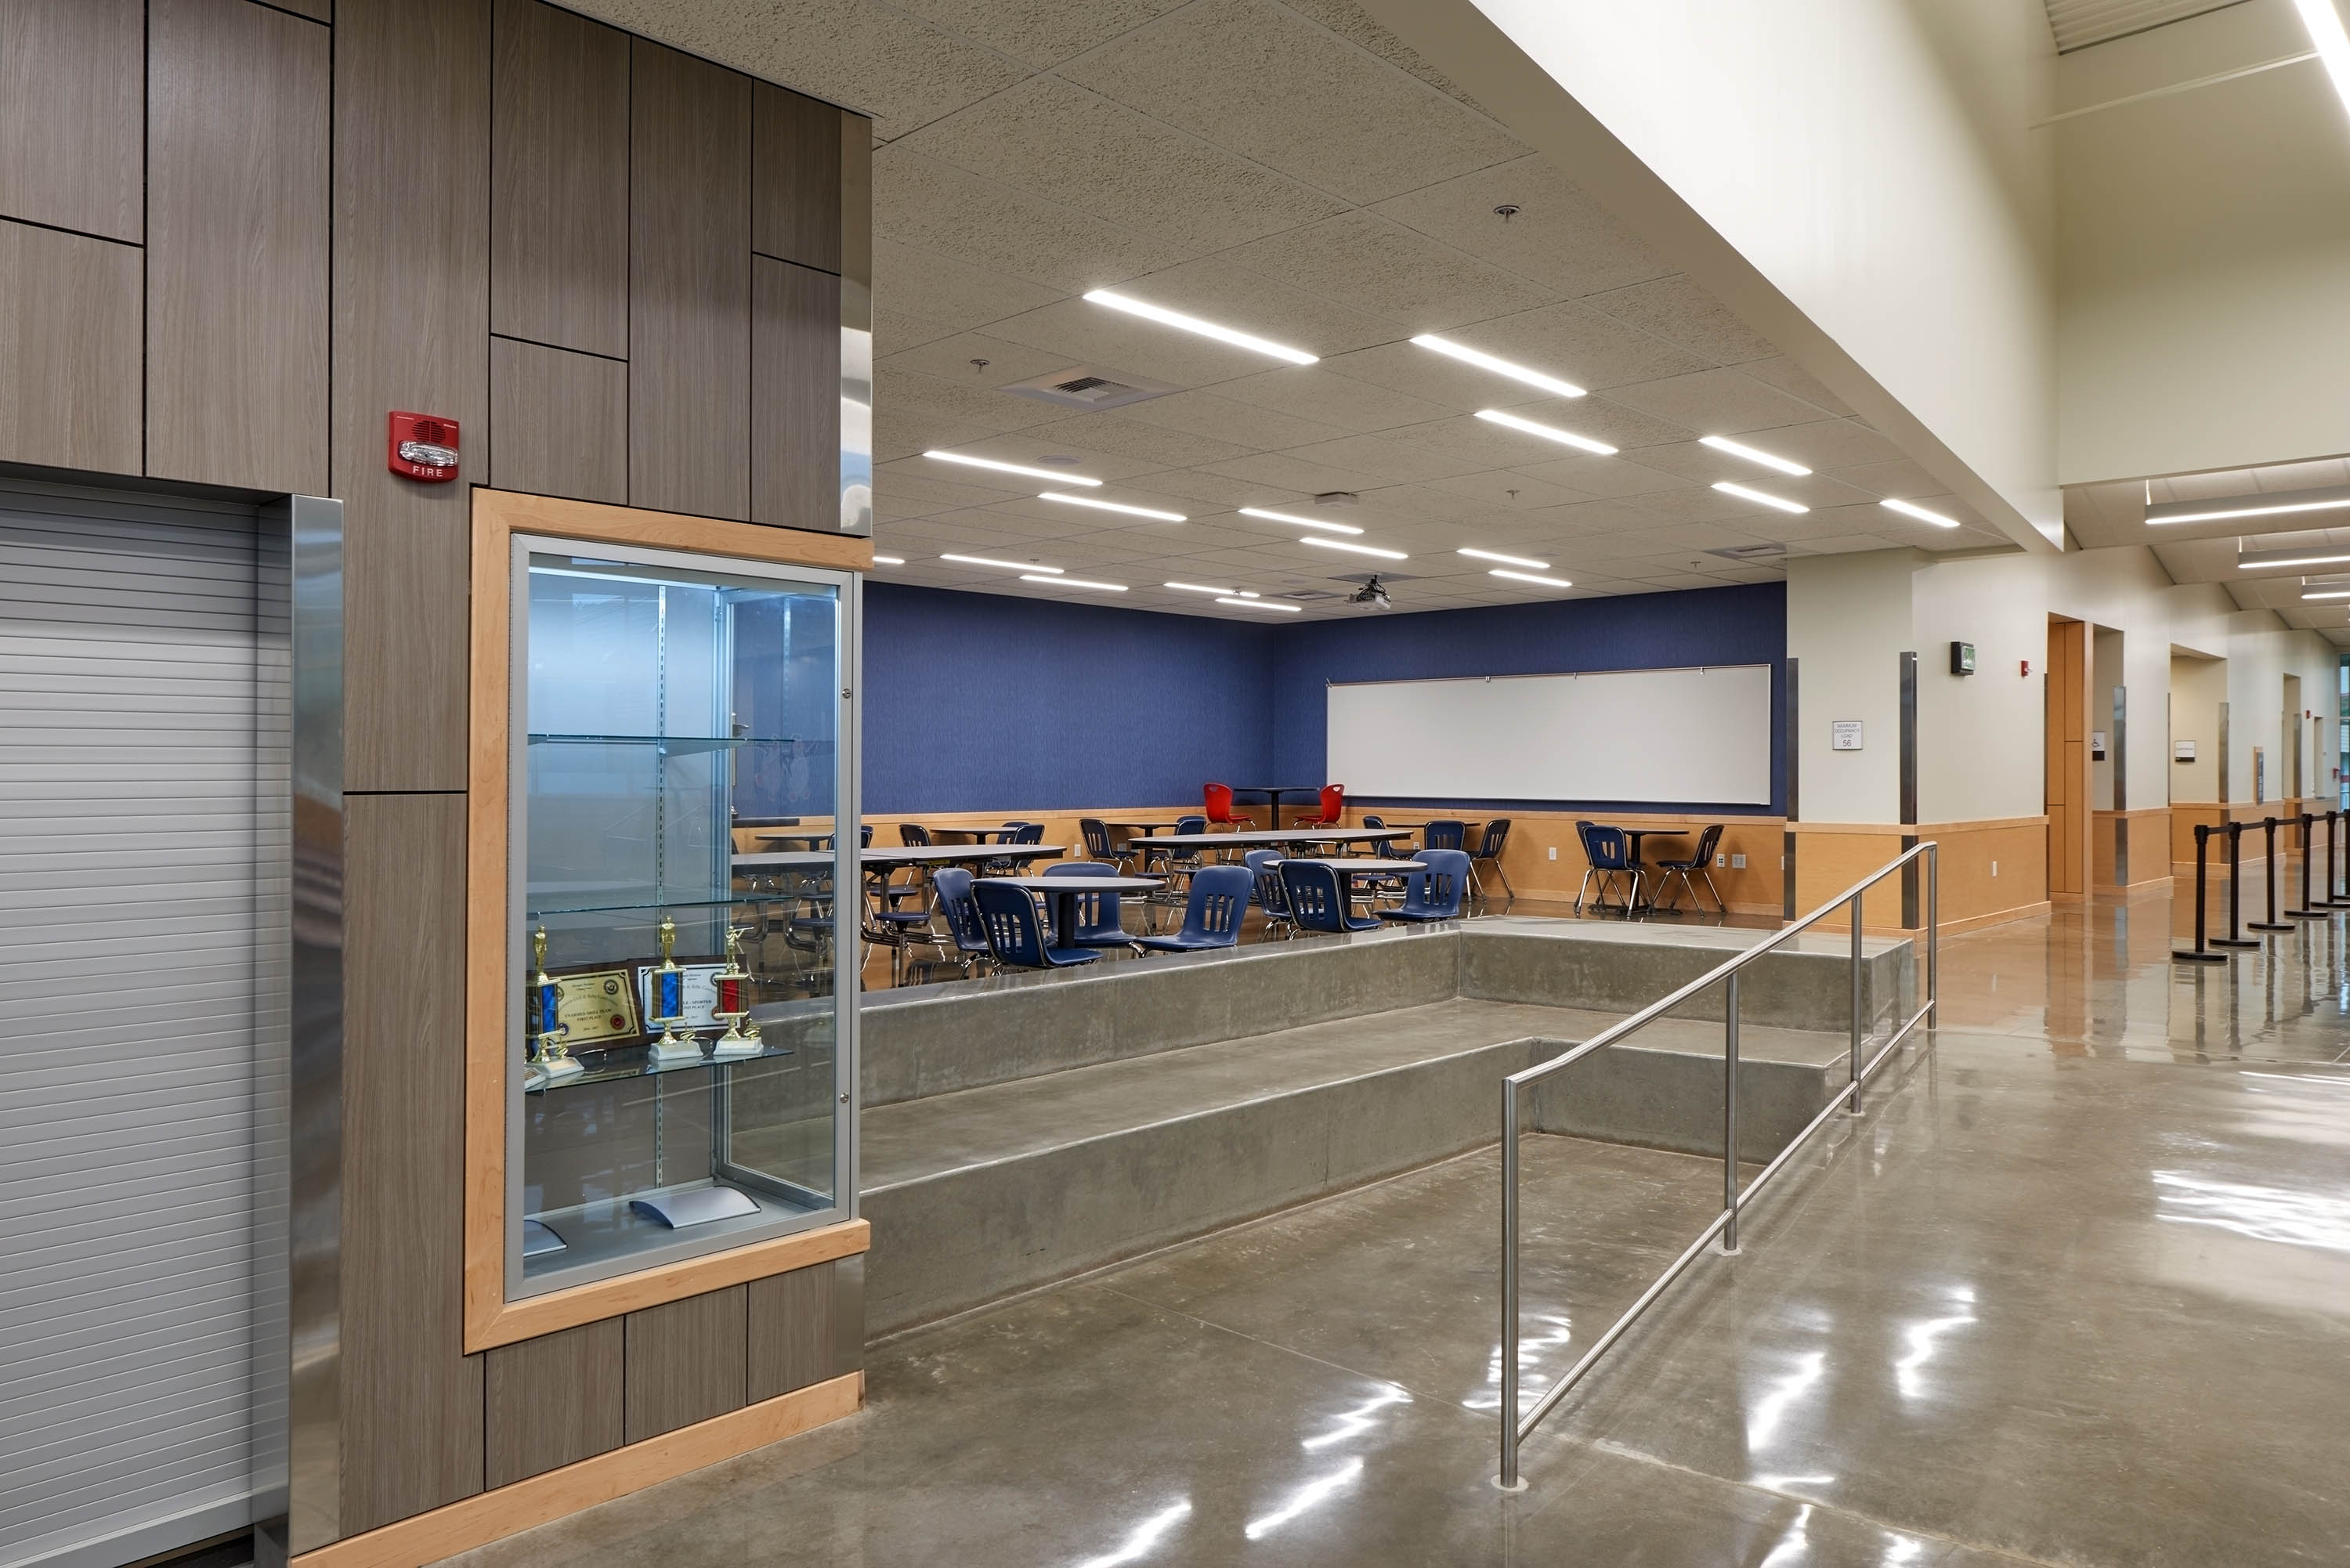 Flex space for students and additional bunch seating built into the slope of the floor.